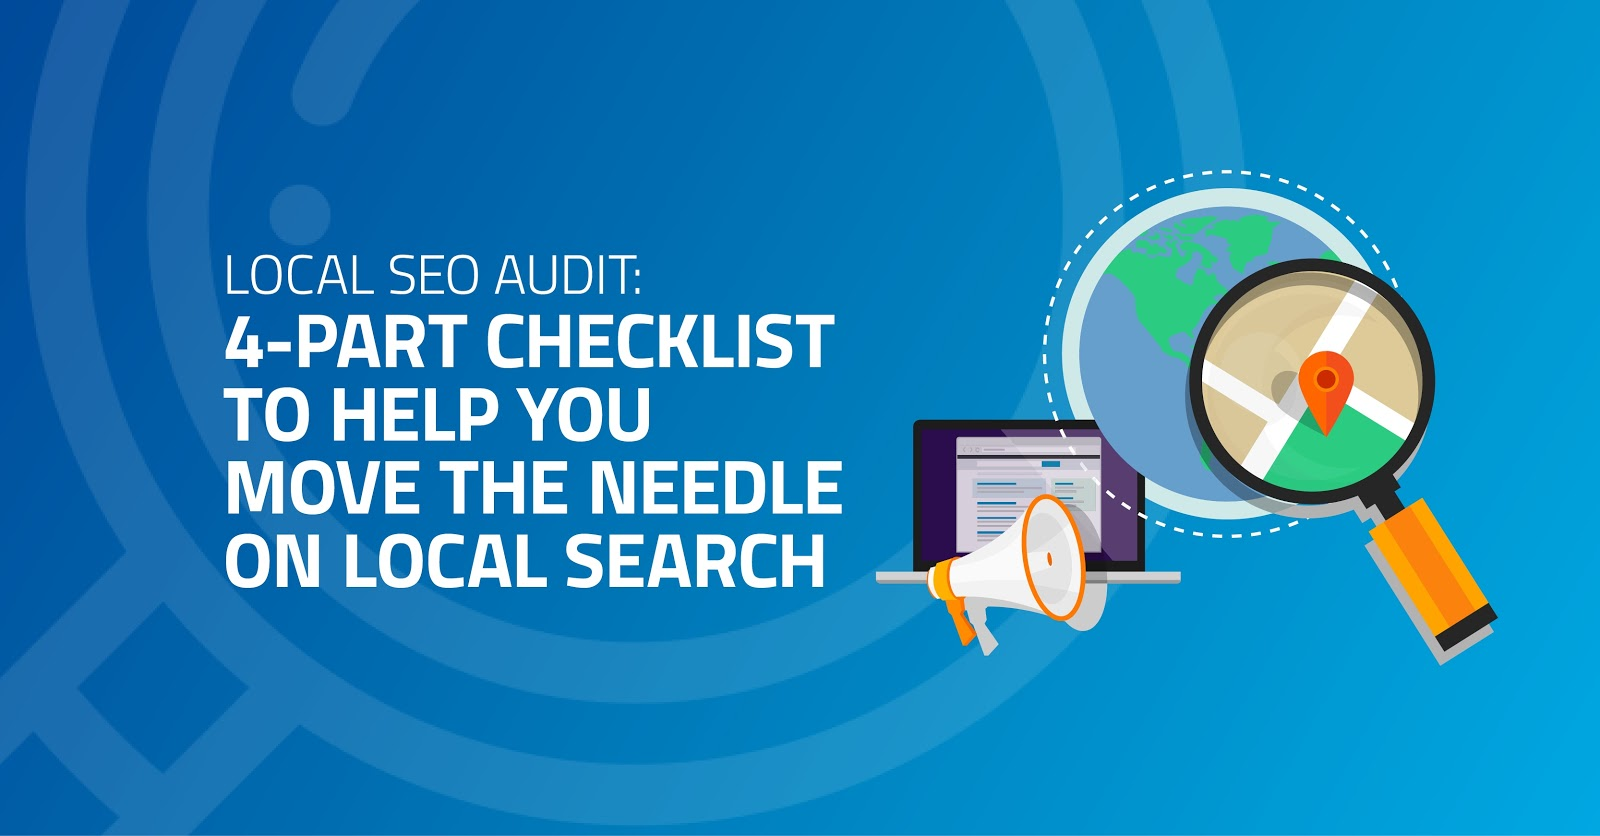 Local SEO Audit: 4-Part Checklist to Help You Move the Needle on Local Search